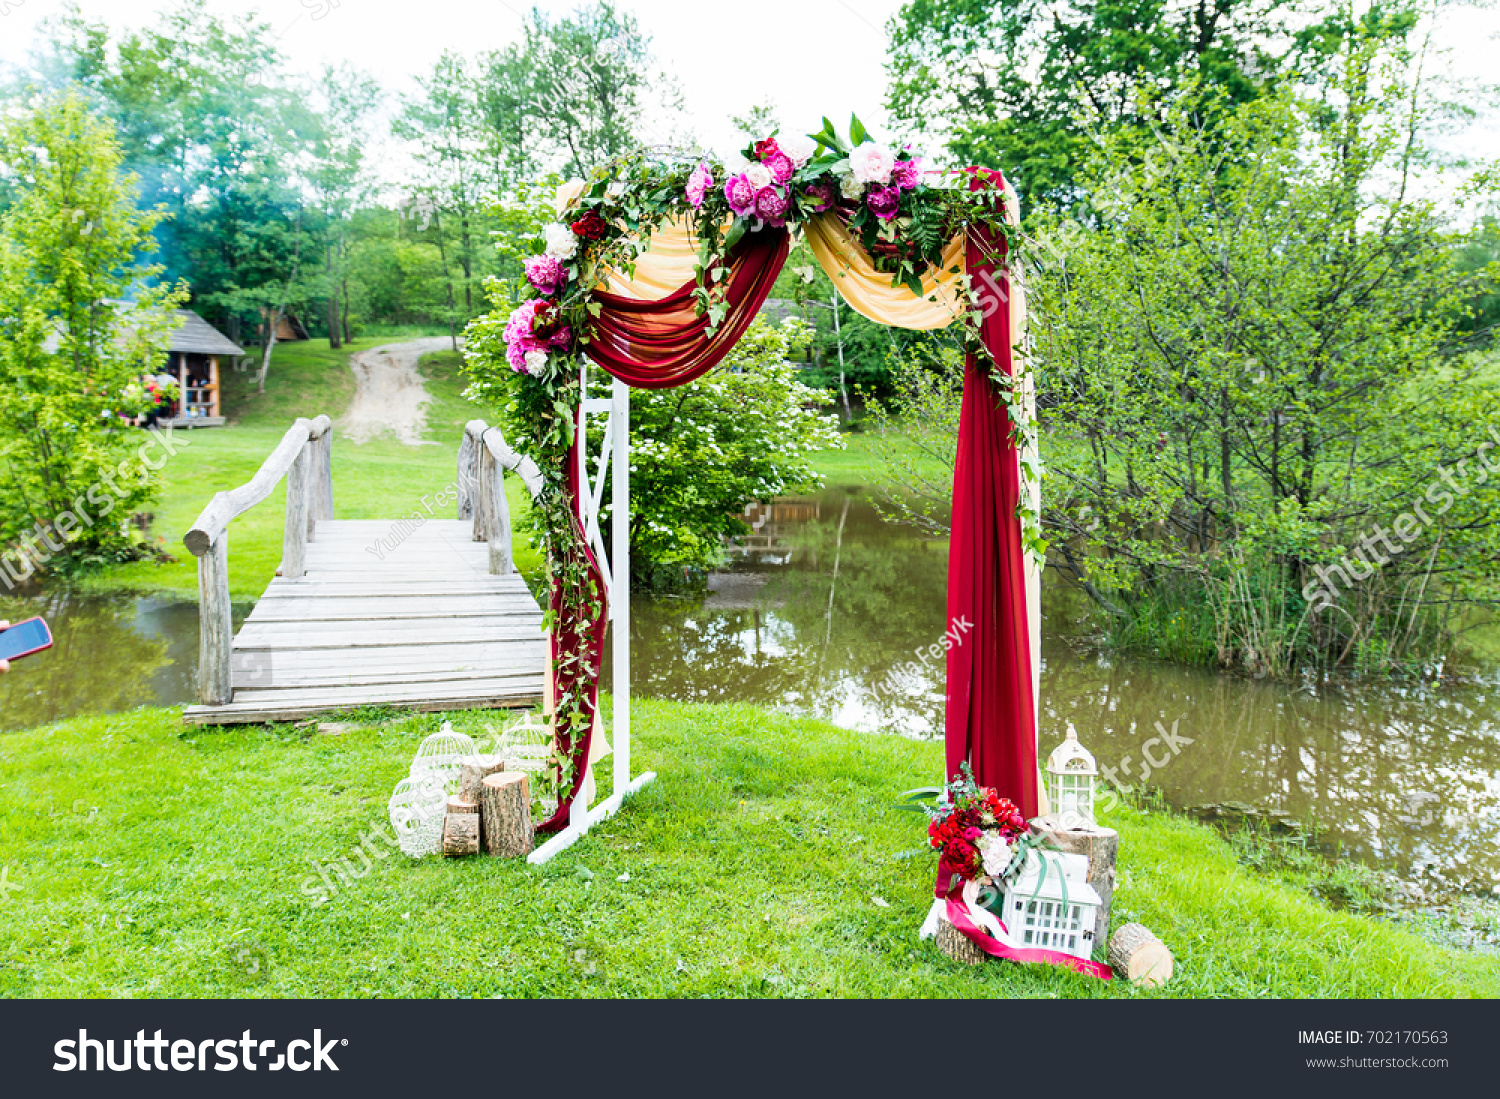 Wedding Arch Flowers Decor Peaceful Place Stock Photo (Royalty Free ...